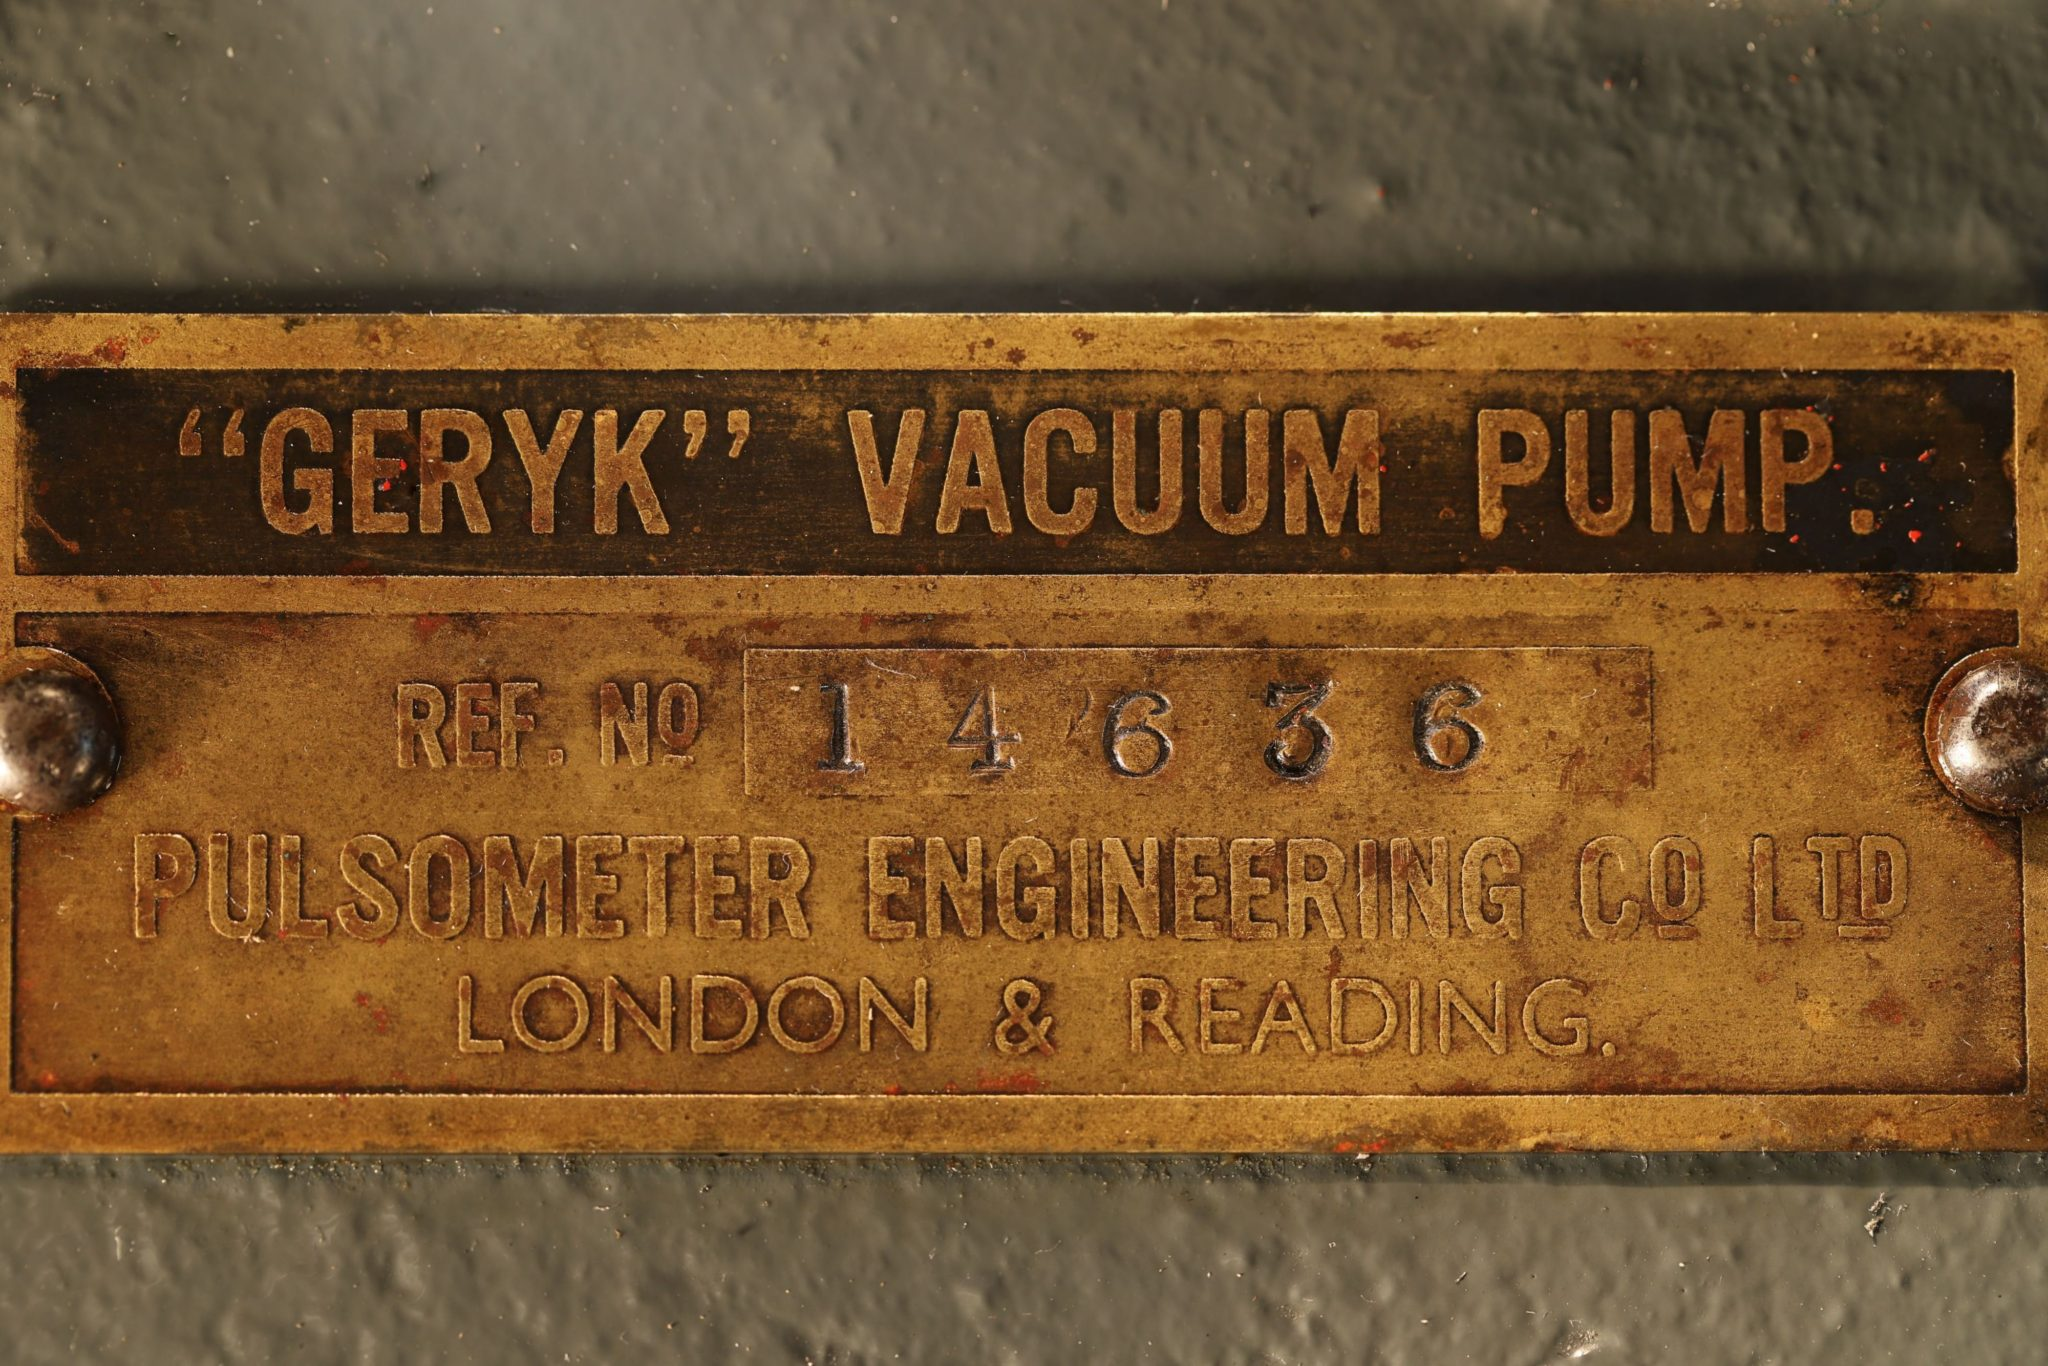 Image of Geryk Vacuum Pump No 14636